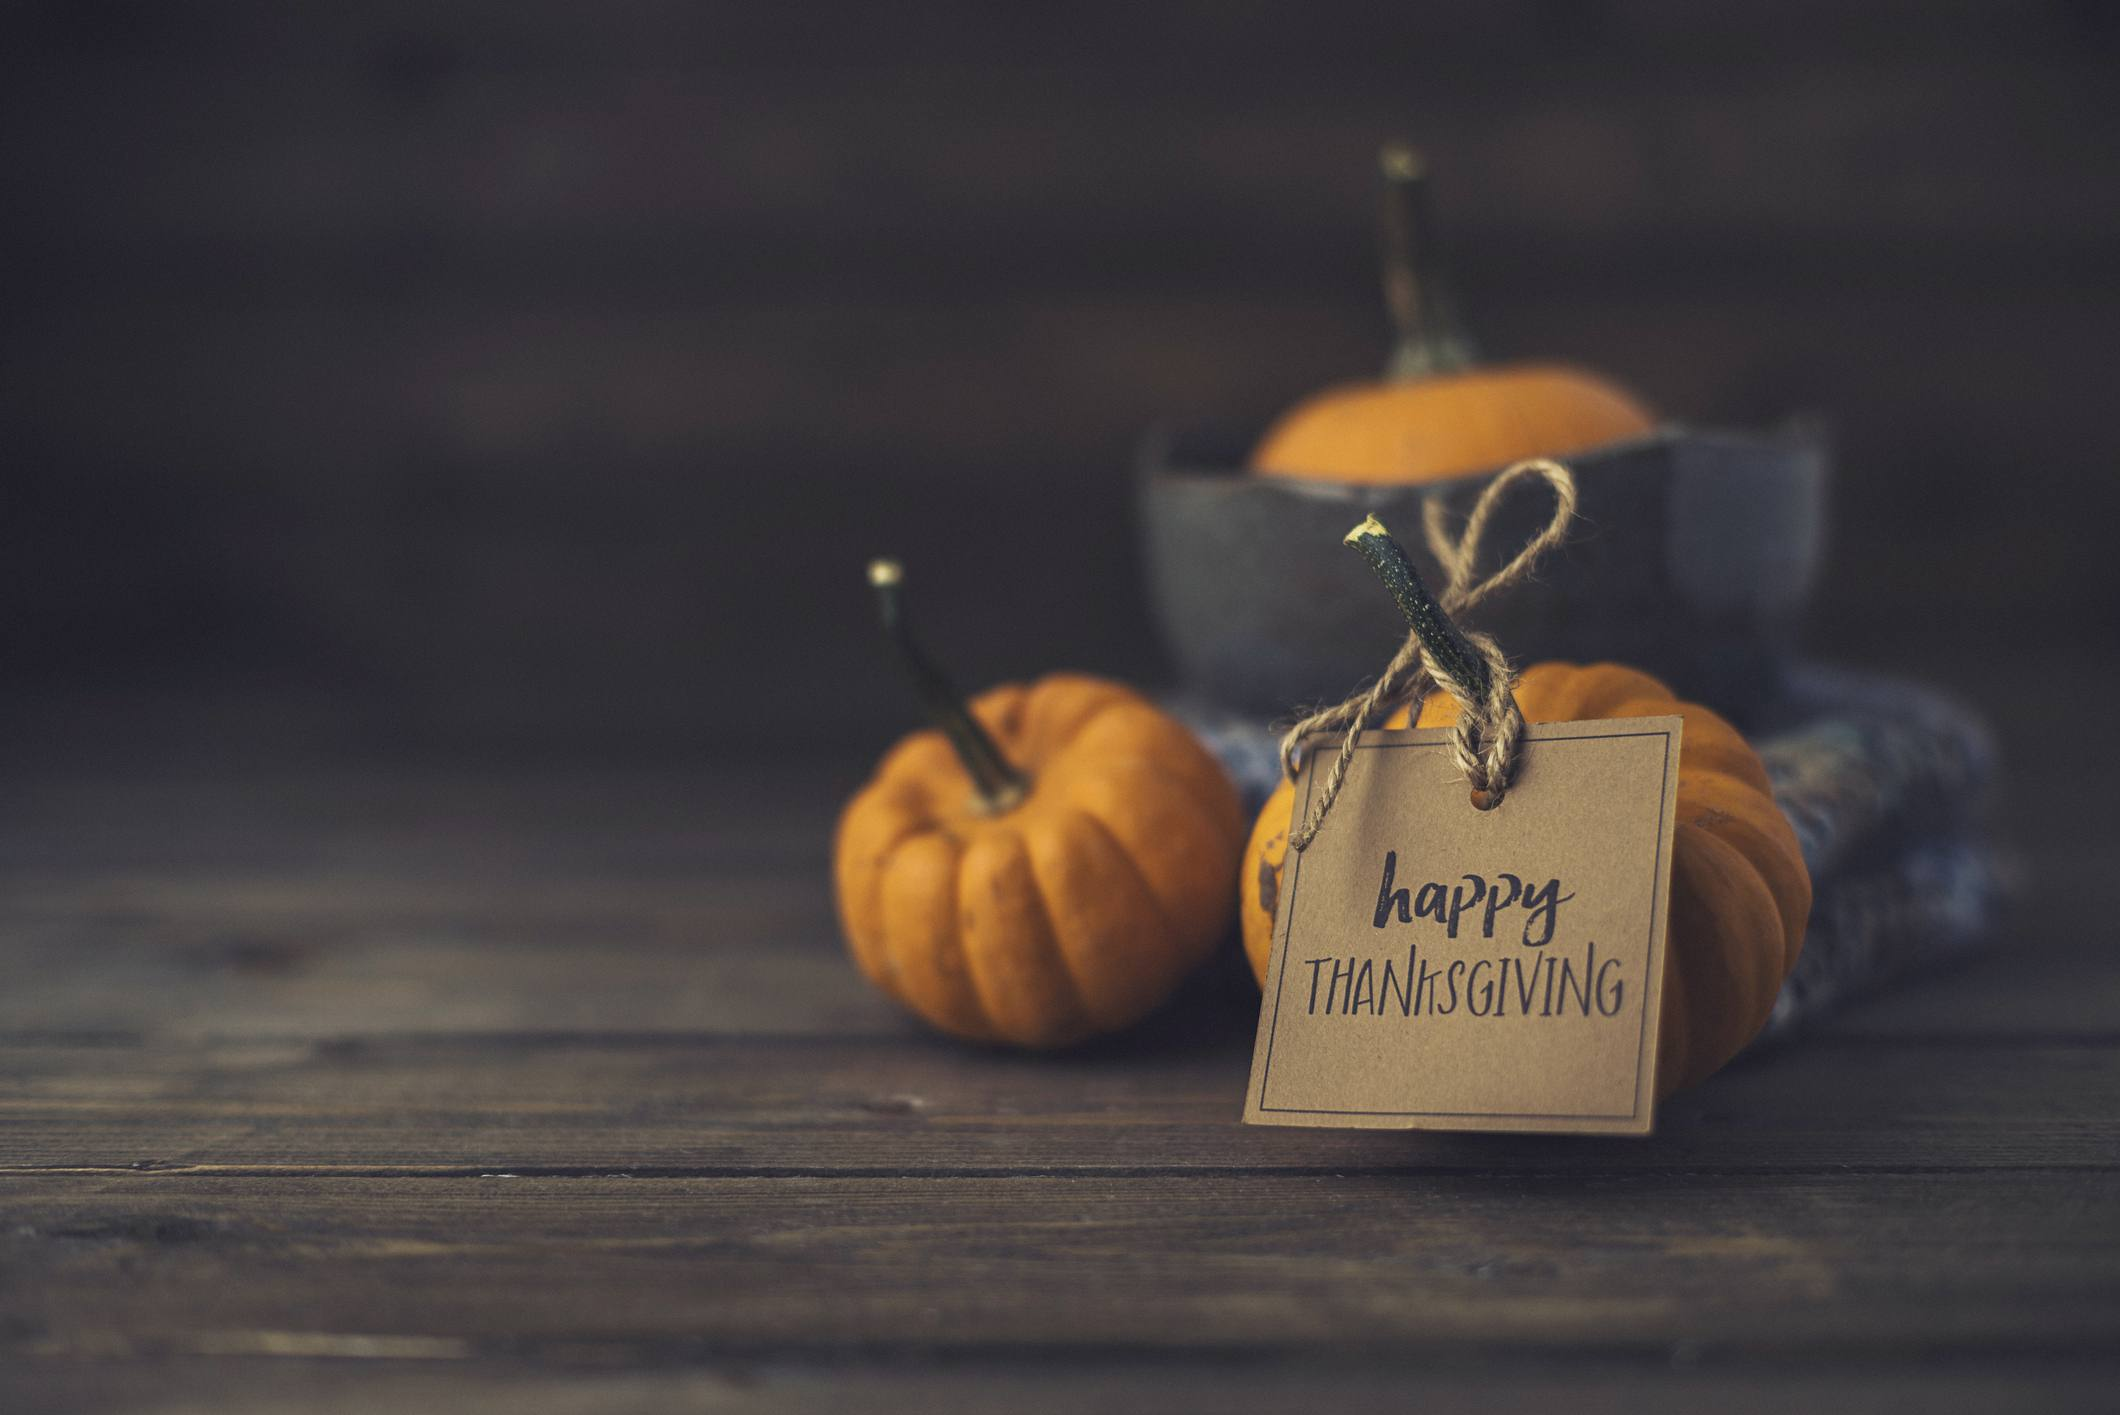 Mini pumpkins and Happy Thanksgiving message